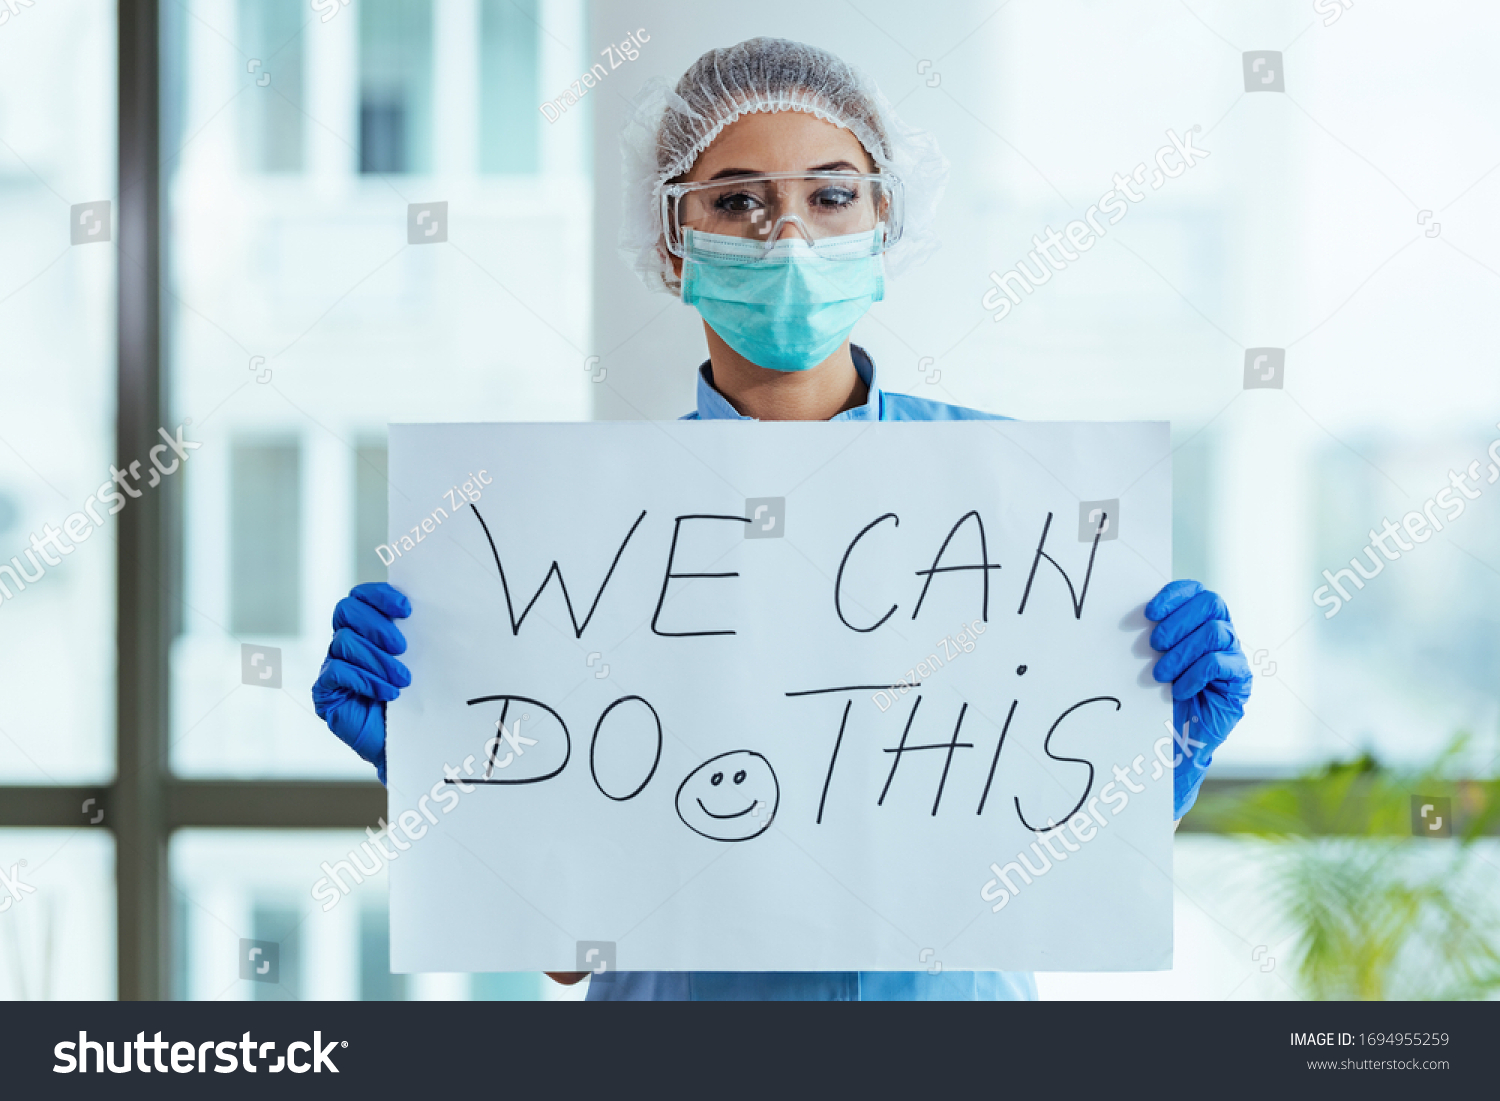 Healthcare worker holding placard with supportive 'we can do this' message while standing in the hospital.  #1694955259